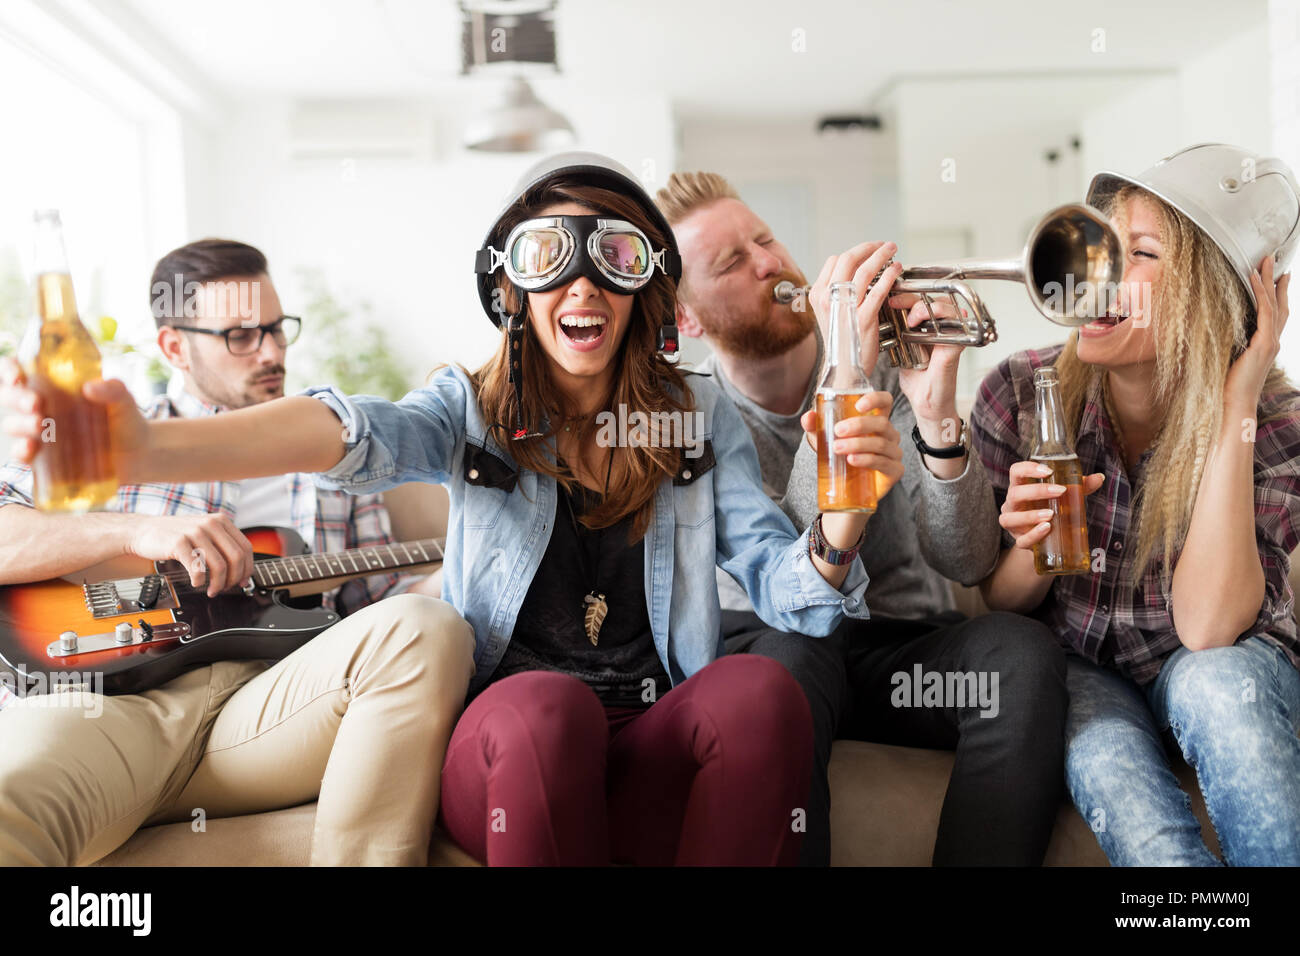 Young students and friends celebrating ahd having fun while drinking - Stock Image